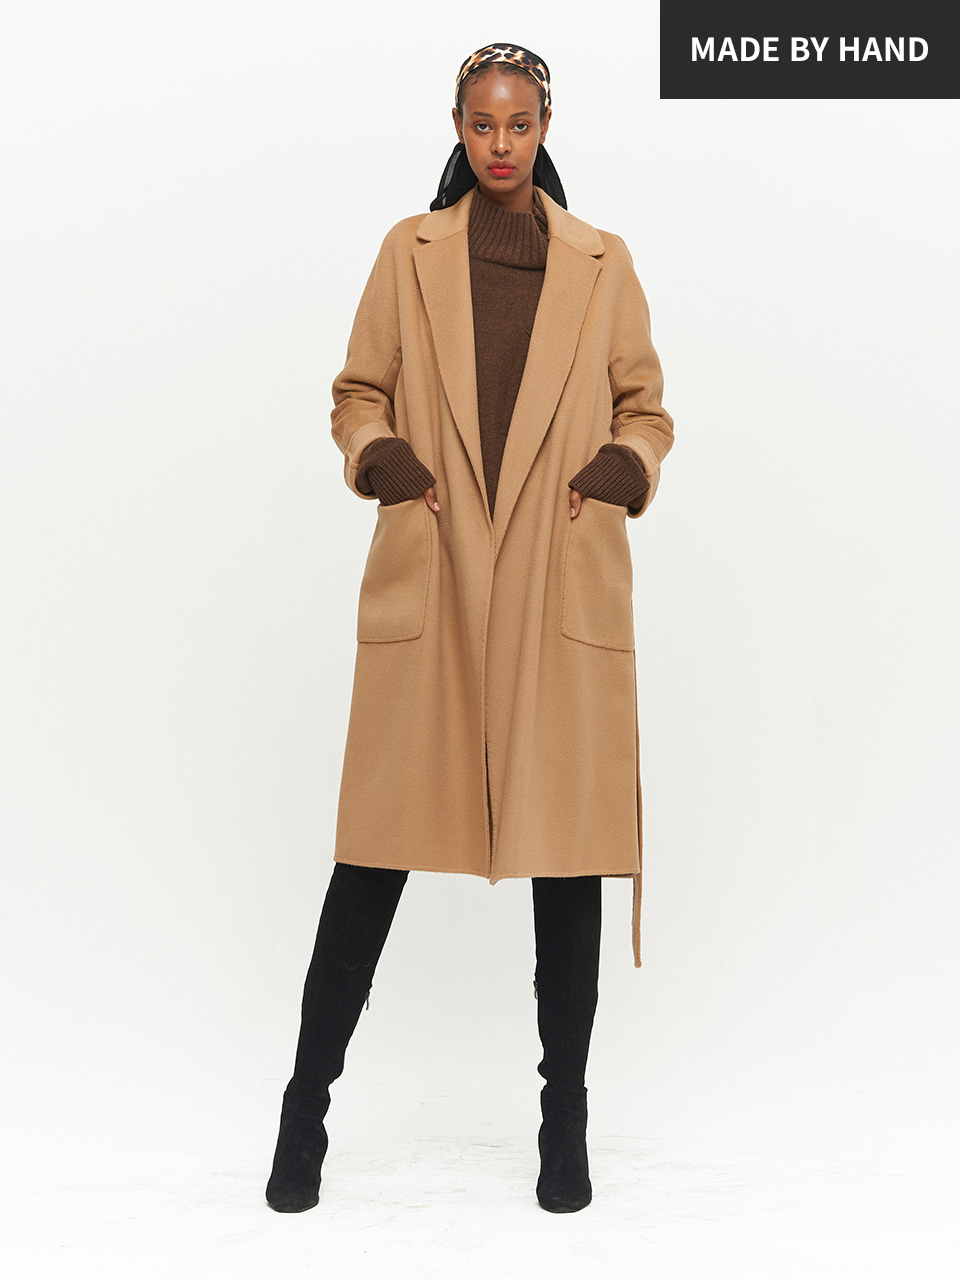 ⓗ [PREMIUM] AUSTALIAN WOOL HANDMADE LONG COAT